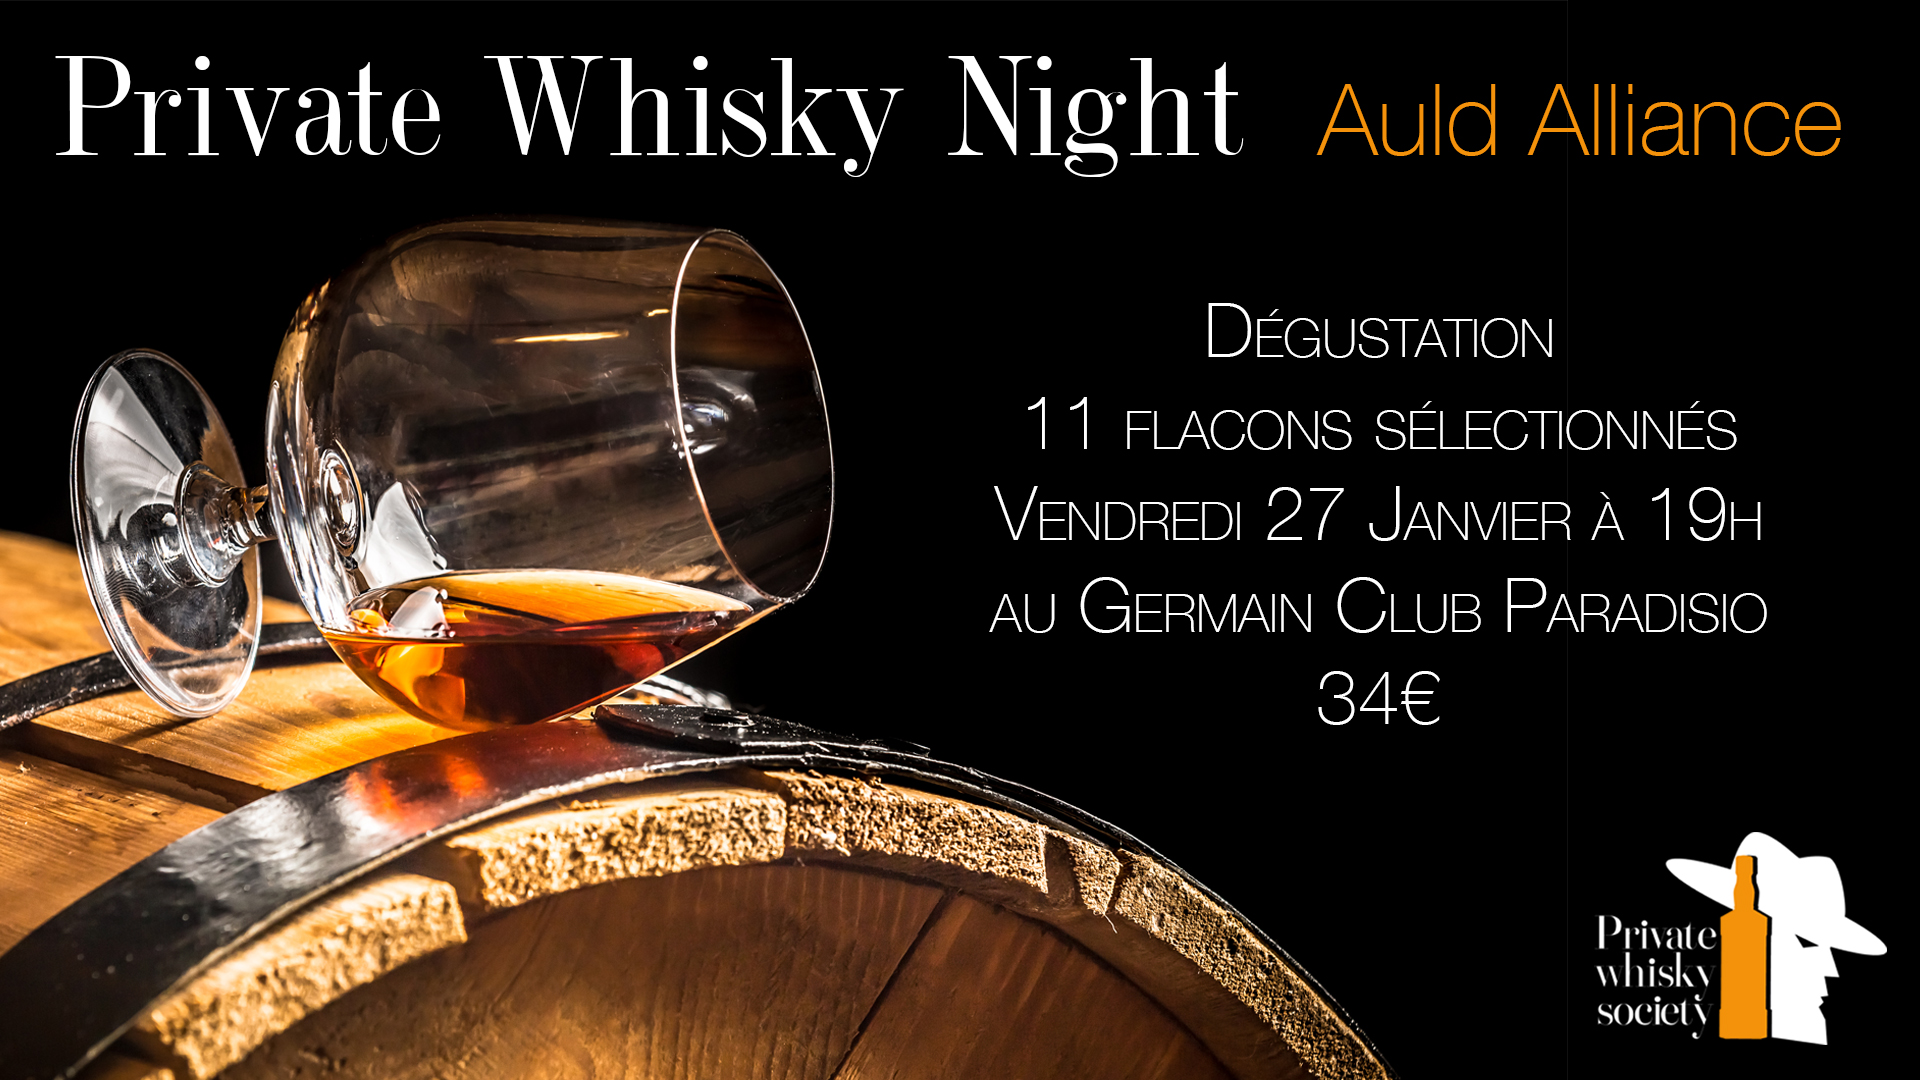 Private Whisky Night Auld Alliance